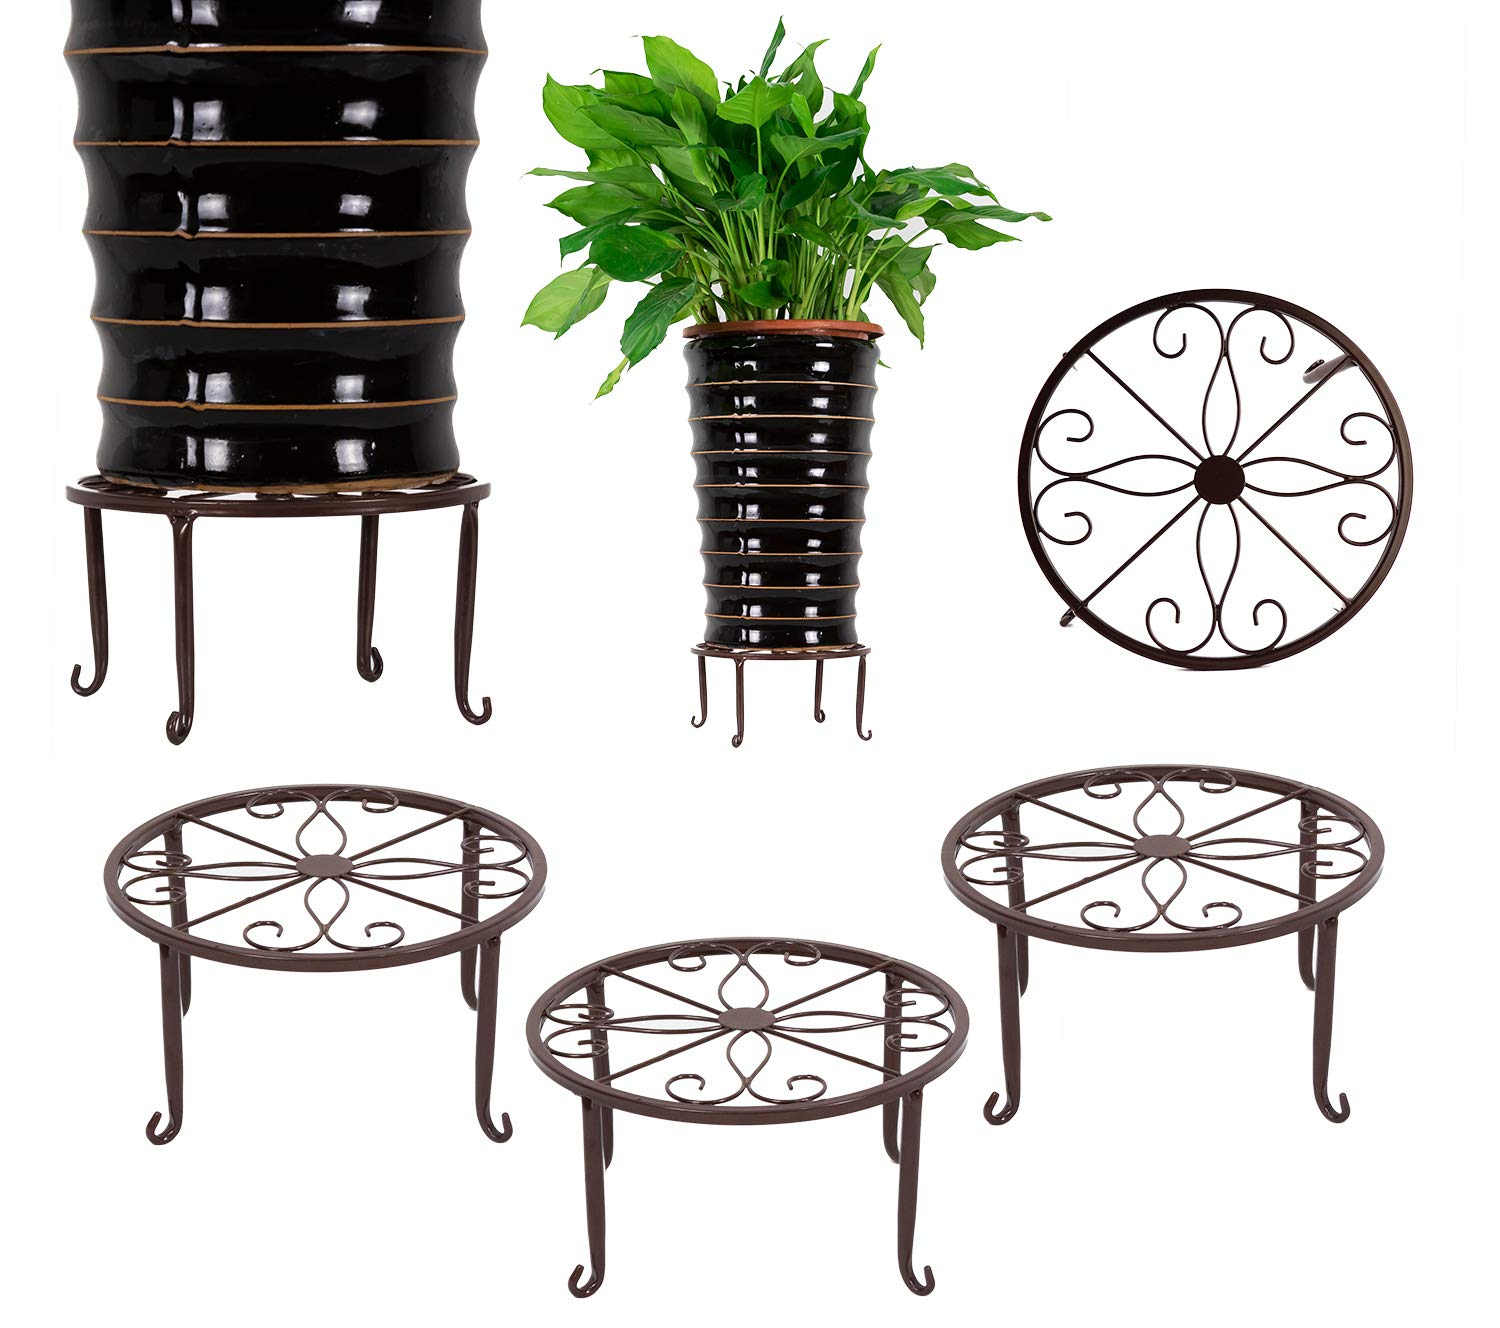 3 Pack Metal Potted Plant Stands Flower Pot Holder 9 inches Heavy Duty 50lb Pre-Assembled Round Rack, Bronze Color by DeElf